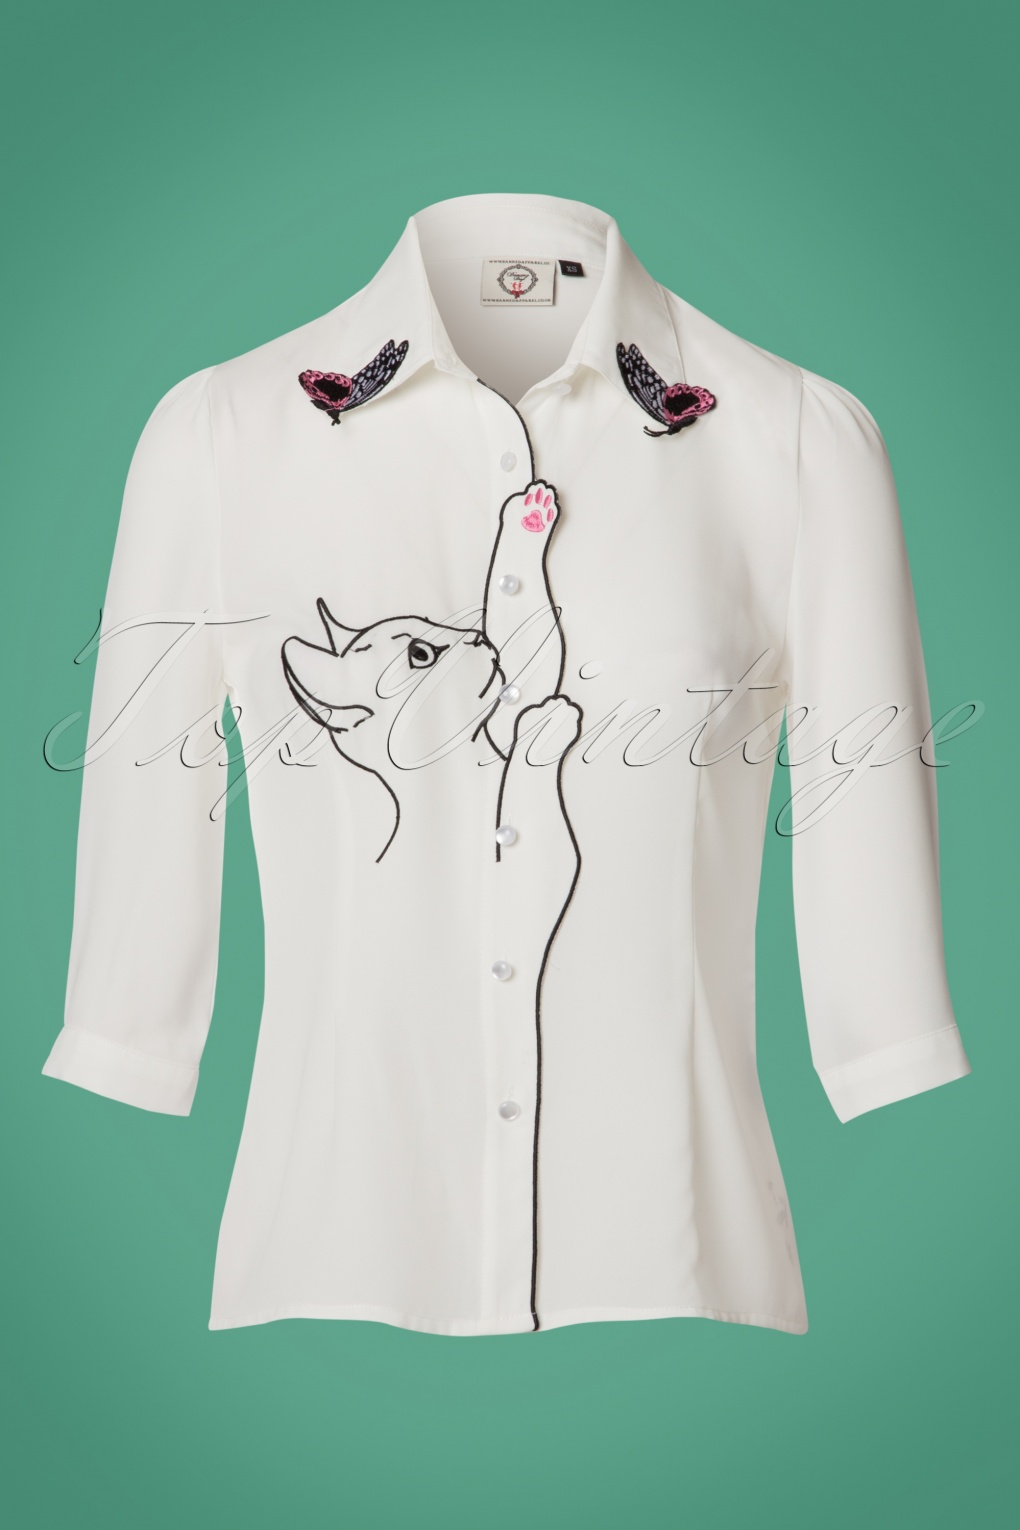 Shop 1960s Style Blouses, Shirts and Tops 60s Snow Bird Blouse in Ivory White £36.21 AT vintagedancer.com